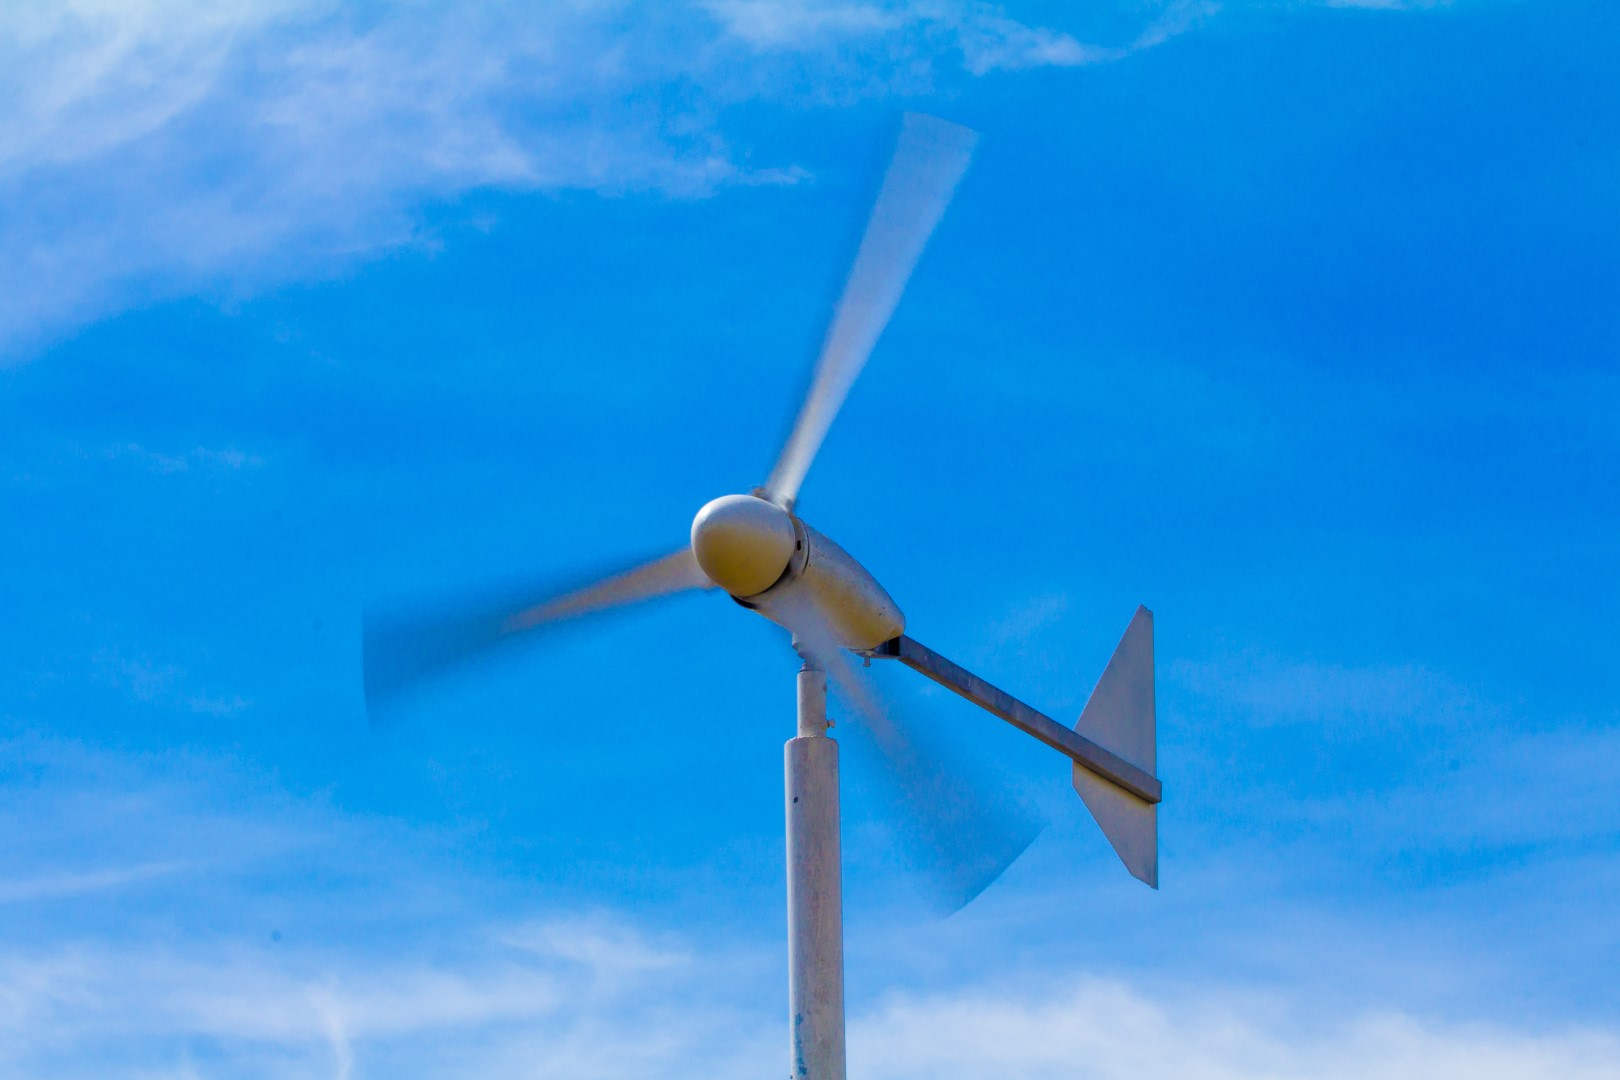 OIL PRODUCERS TURN TO WIND POWER—ENERGY JOURNAL